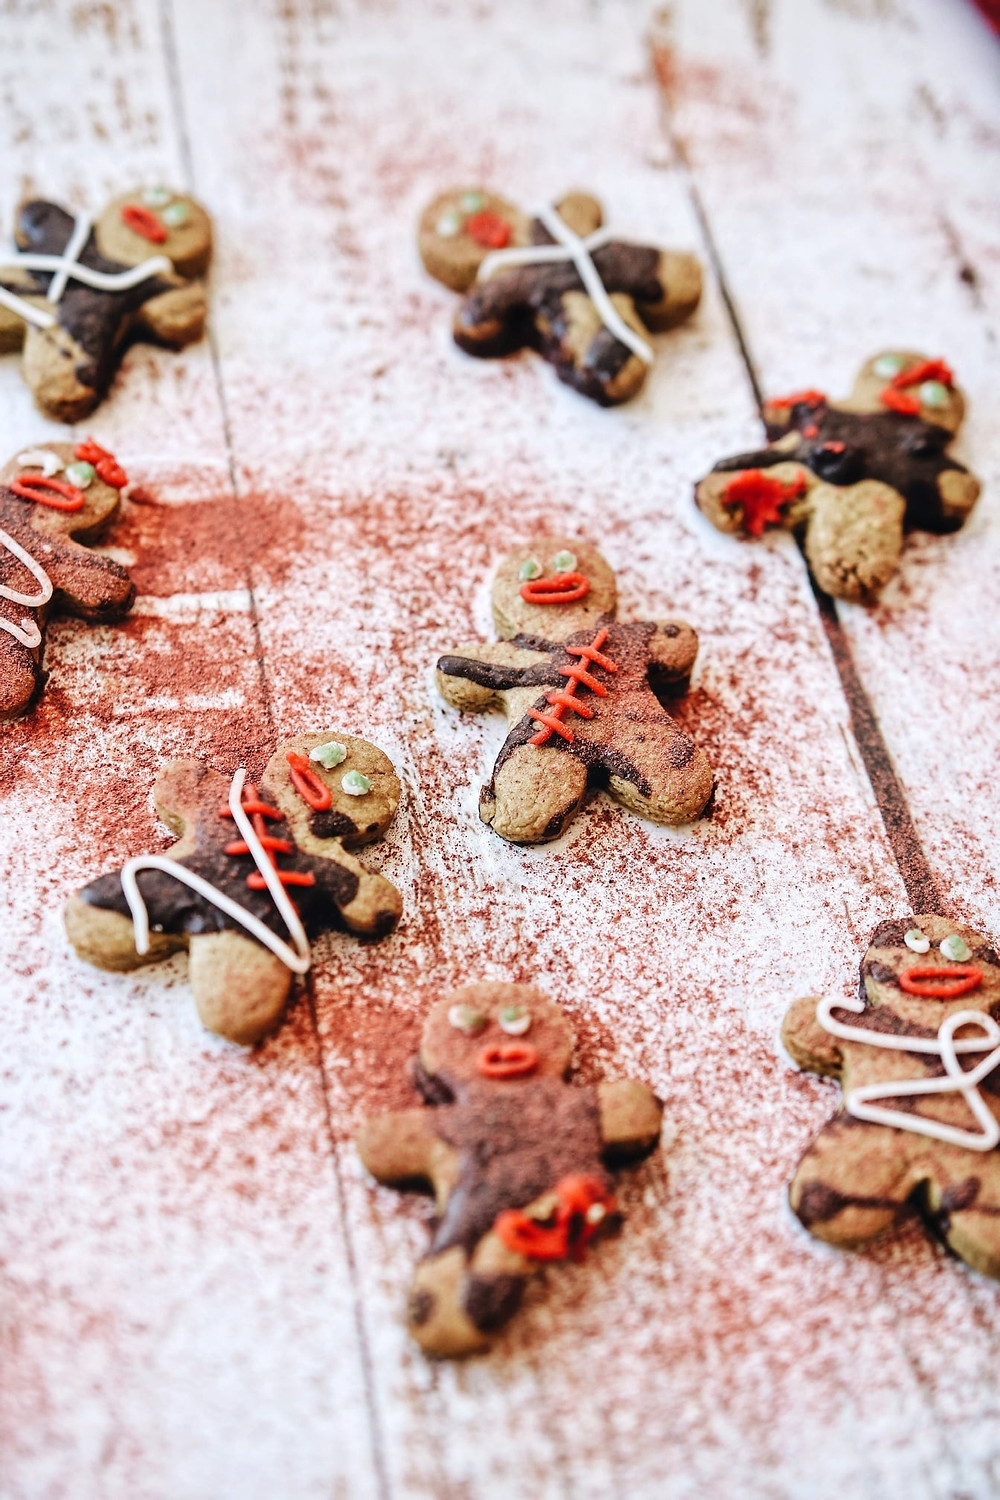 Spooky gluten free Halloween Zombie cookies on a white and red background.